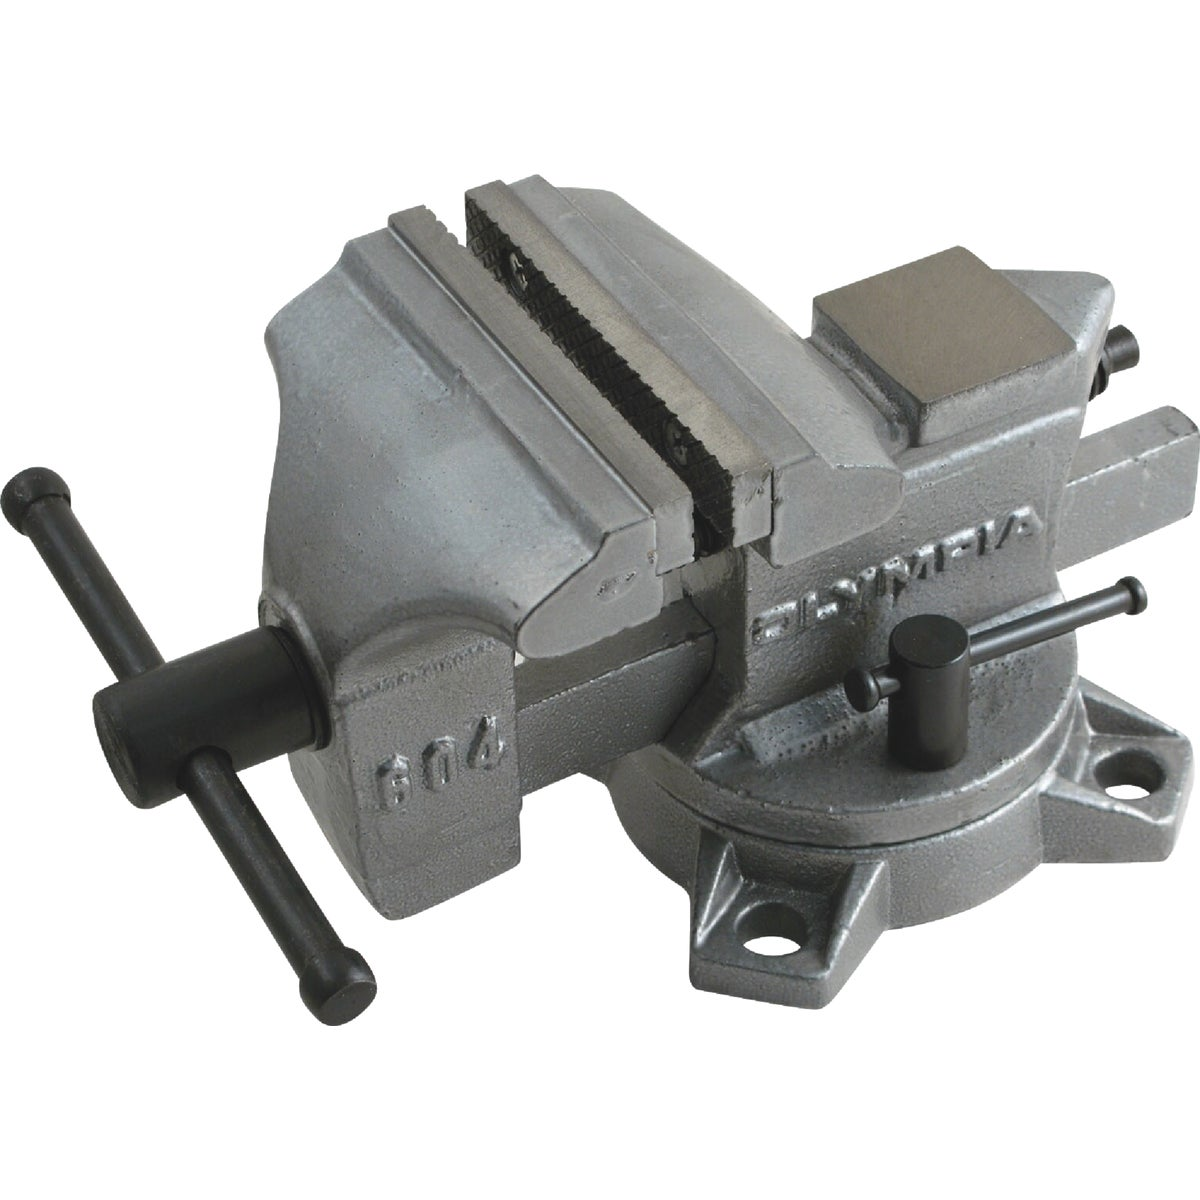 "4"" WORKSHOP BENCH VISE - 38-604 by Olympia Tools"